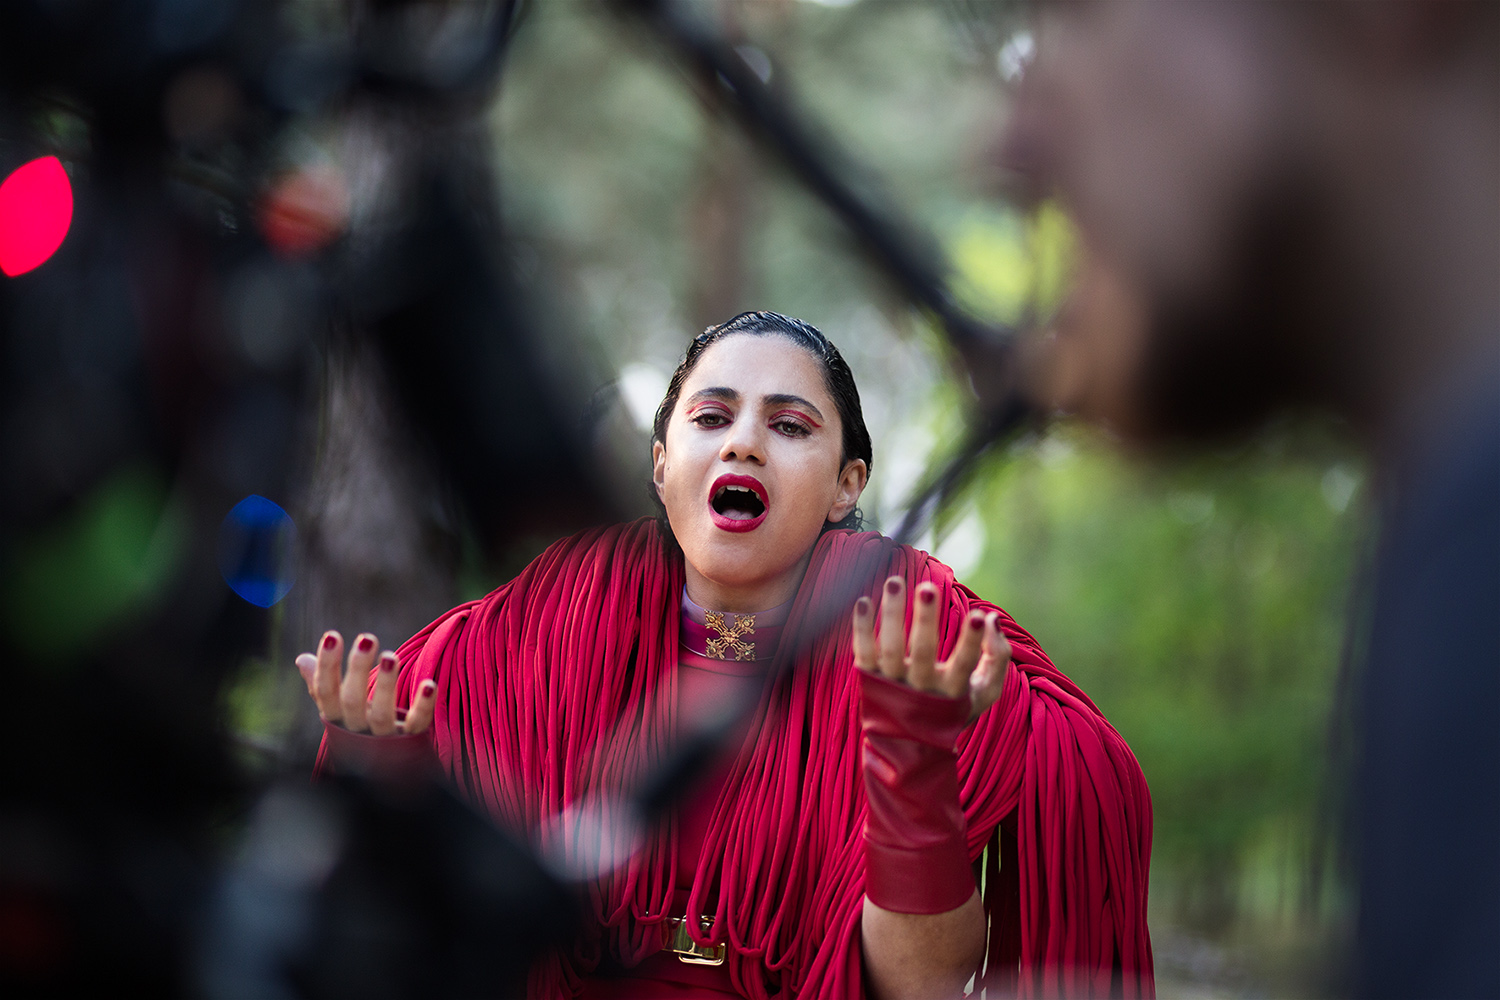 Stills photography at Music Video Shoot Rescuer for tunesian singer songwriter Emel Mathlouthi